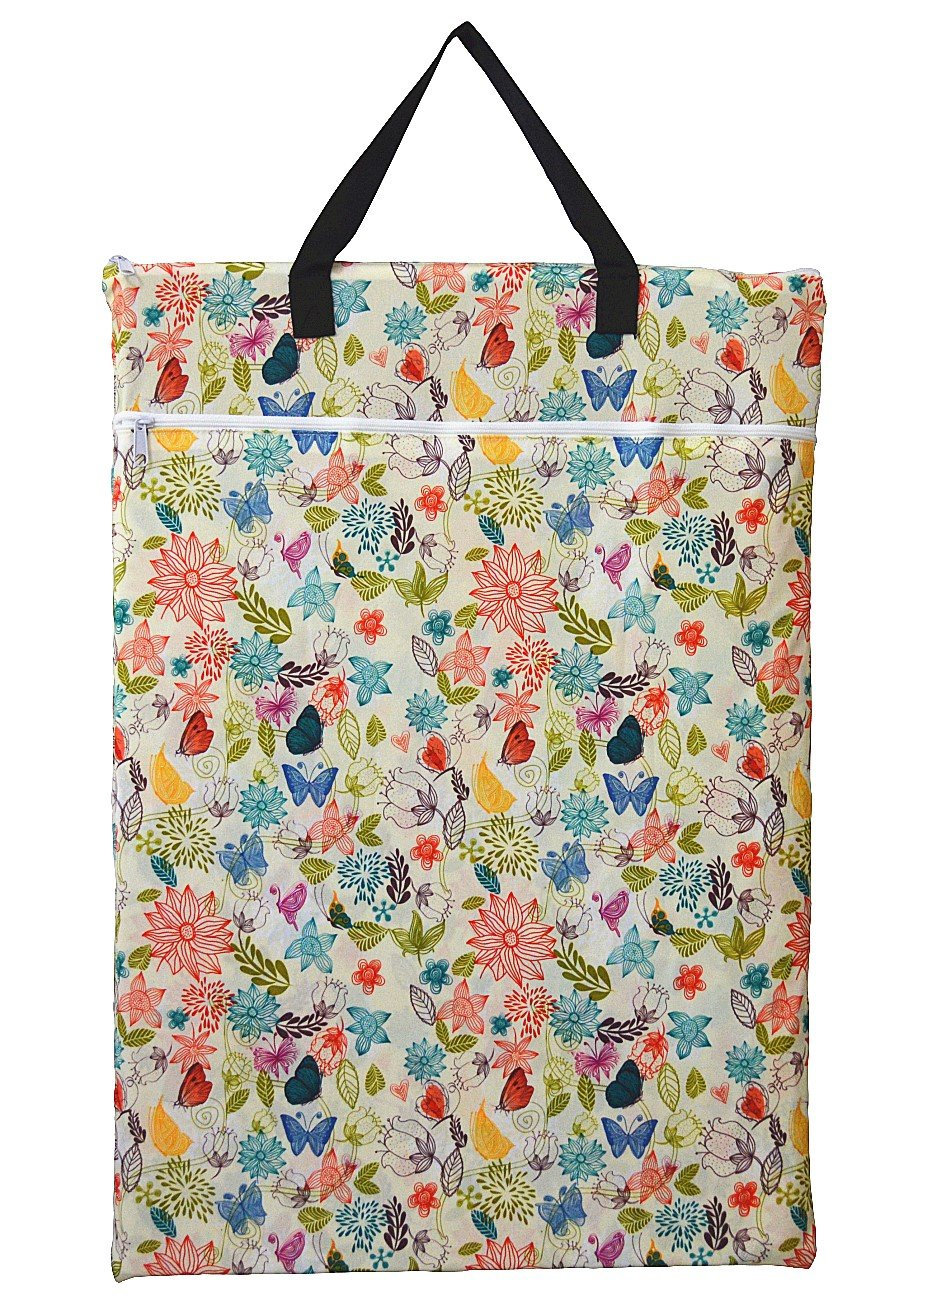 Large Hanging Wet/dry Cloth Diaper Pail Bag for Reusable Diapers or Laundry (Bloom) by Hibaby